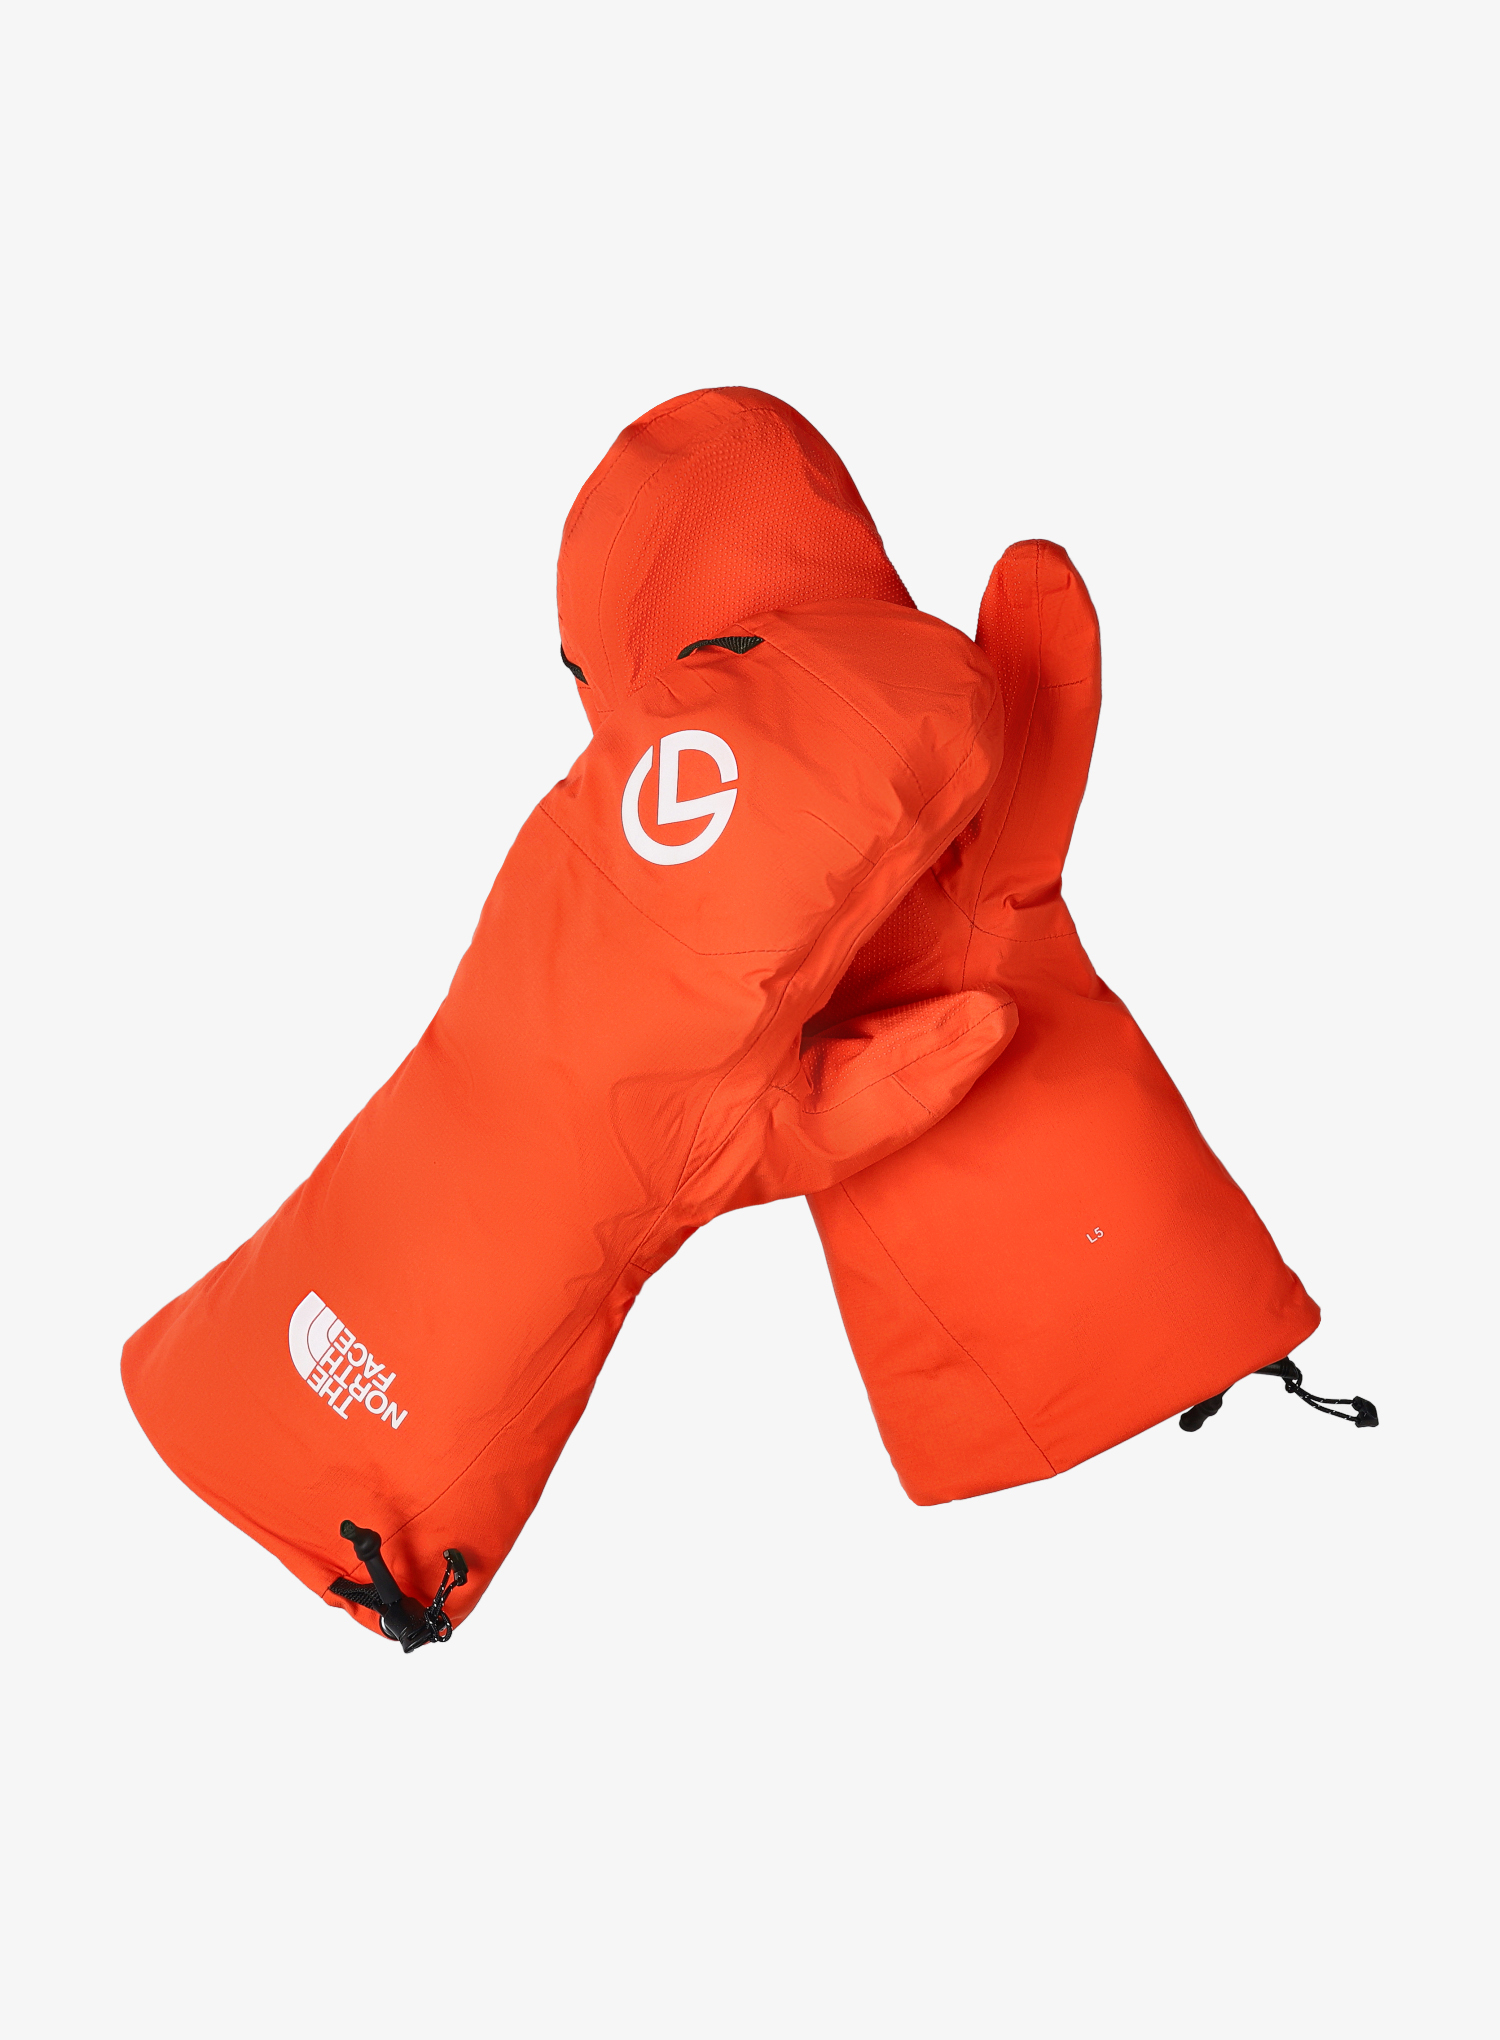 Łapawice The North Face AMK L5 Waterproof Shell Mit - flare - zdjęcie nr. 1